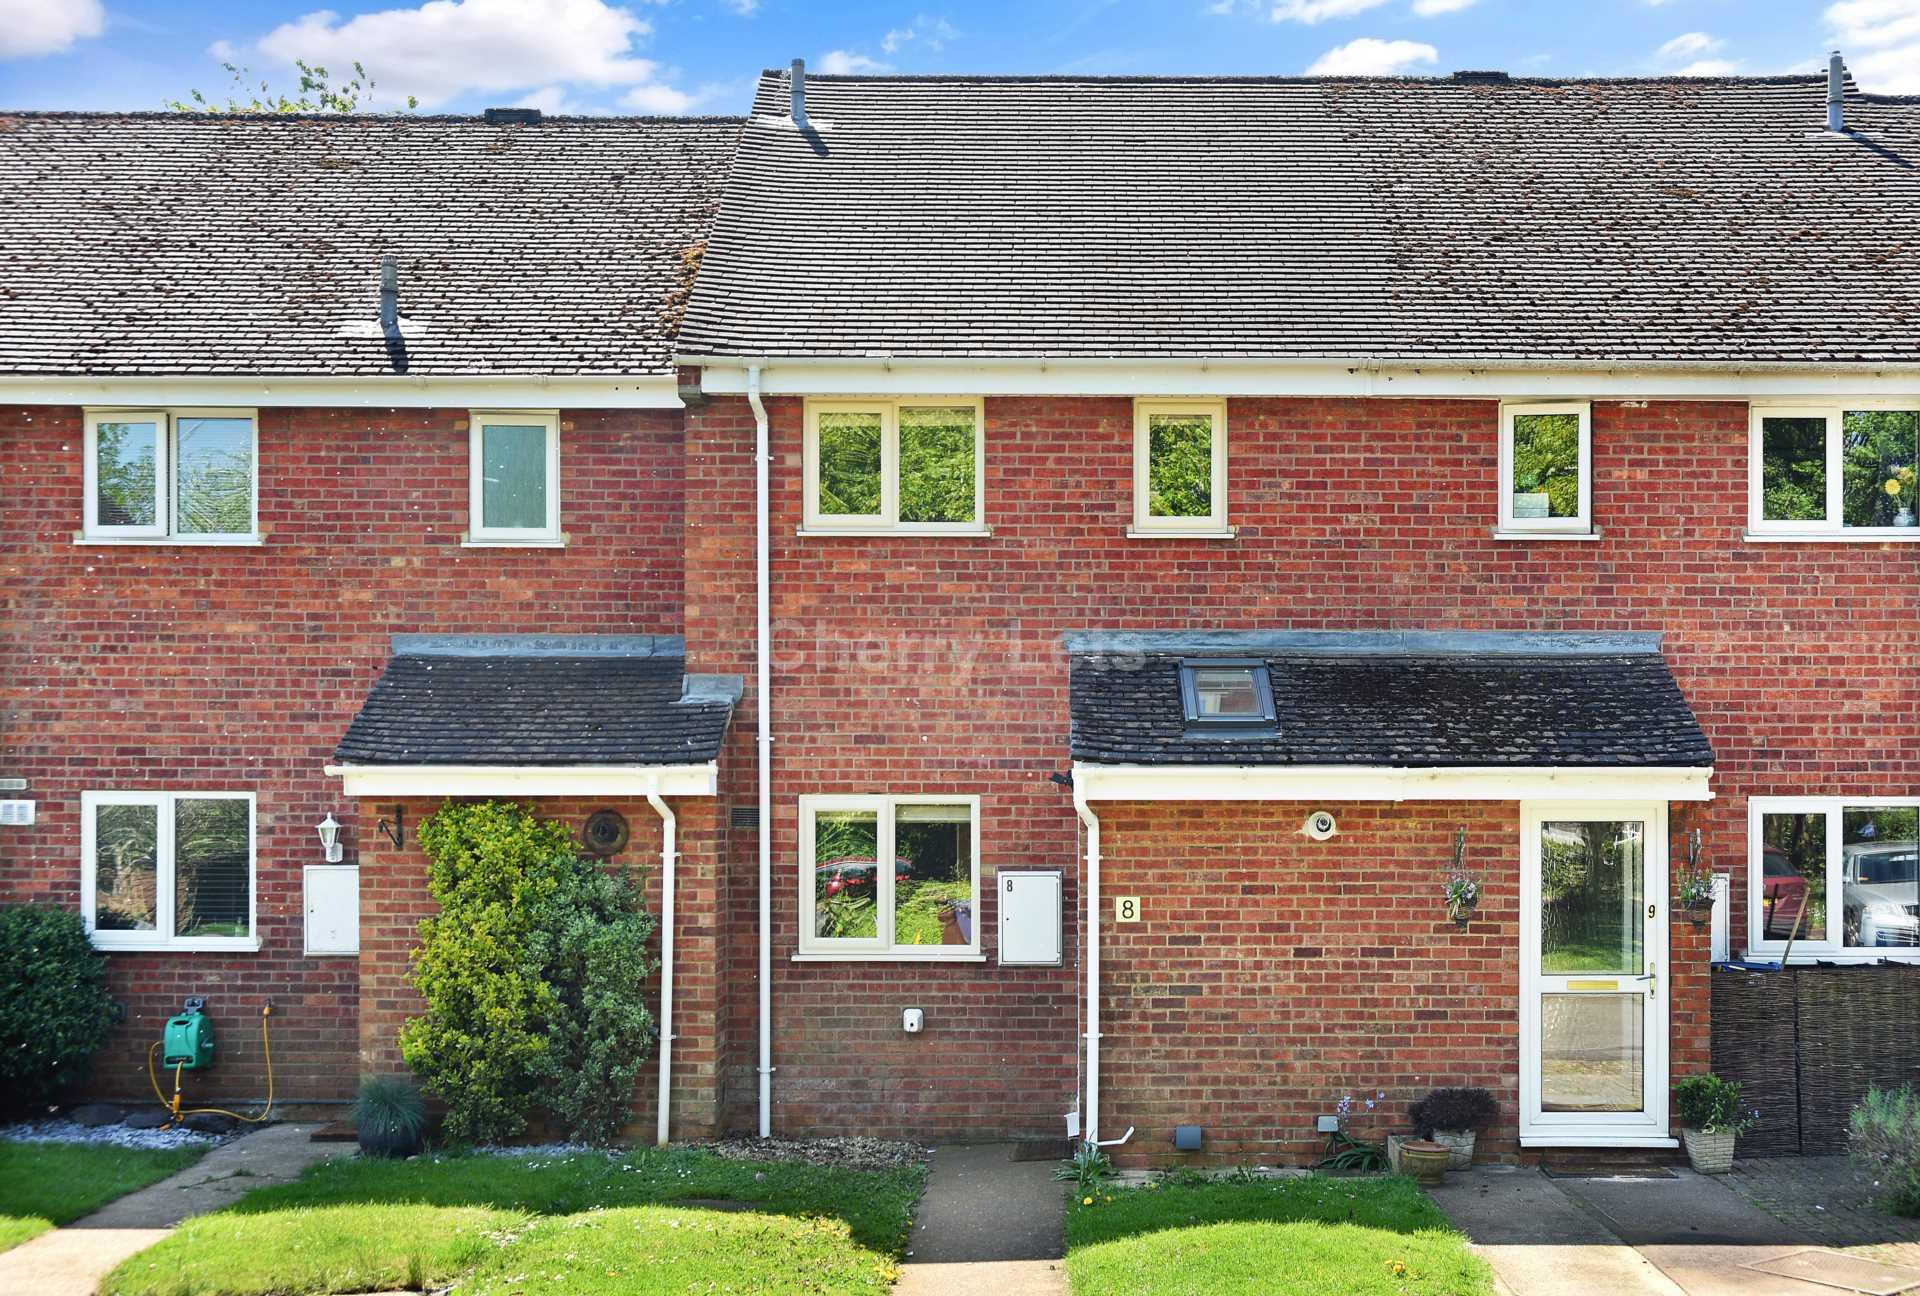 3 bed terraced house to rent in Keytes Close, Adderbury, OX17  - Property Image 14